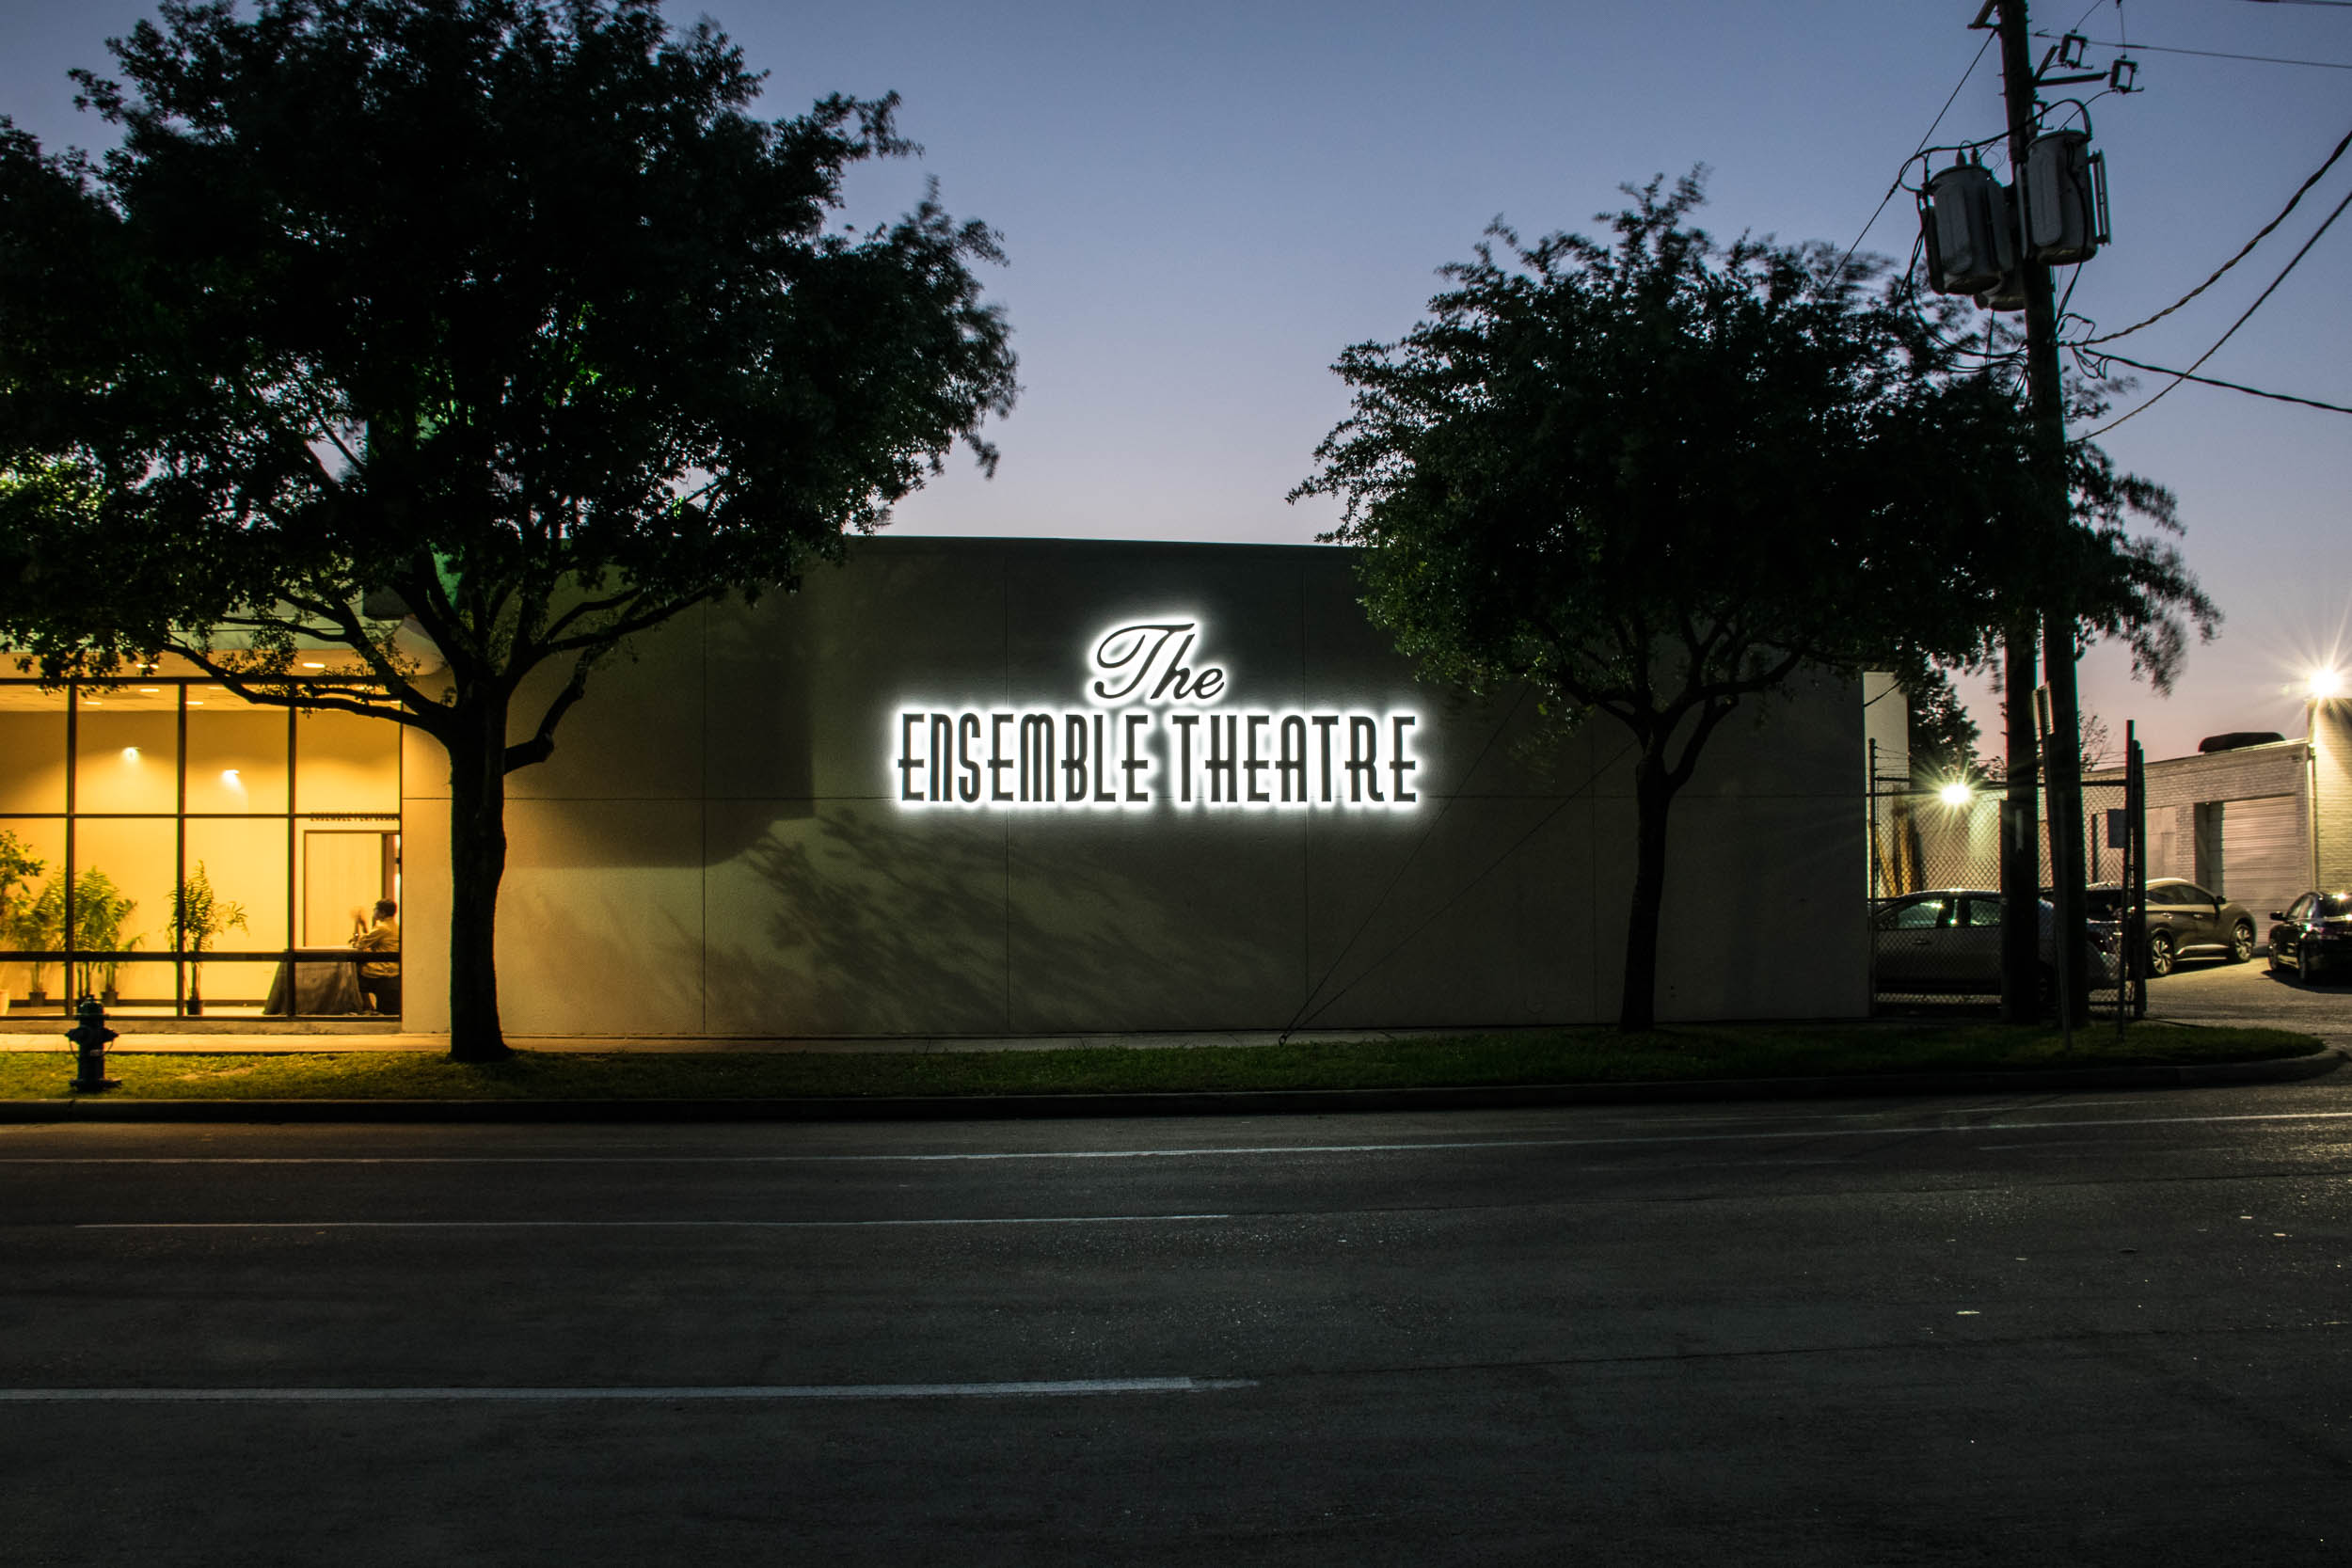 The Ensemble Theatre